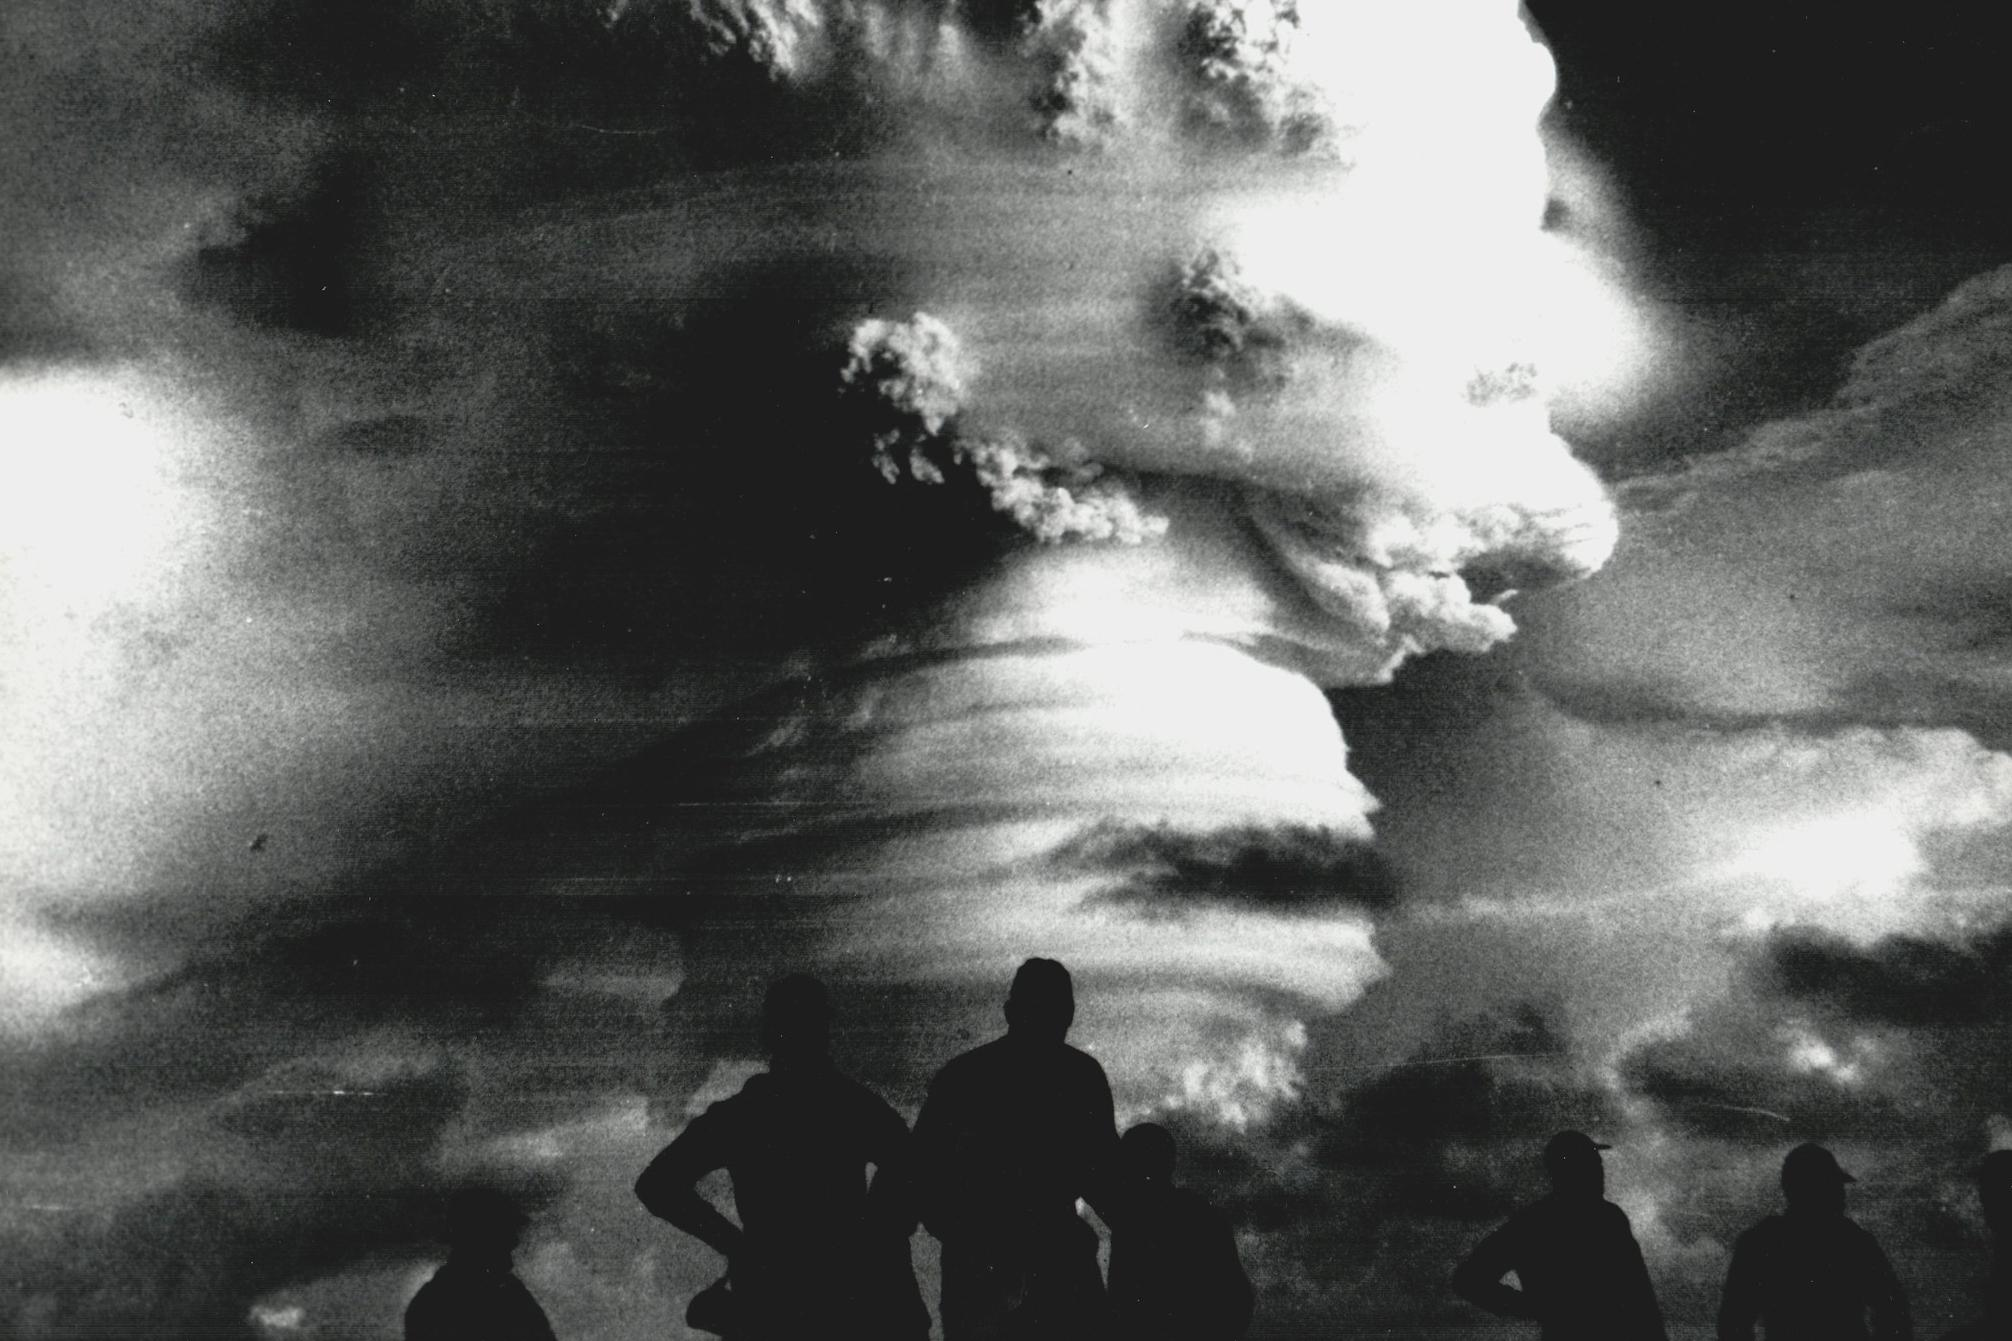 Caption: Observers watch an explosion during Operation Hardtack in 1958. 35 nuclear tests were conducted in the Pacific, exposing troops to radiation., Credit: Nevada National Security Site